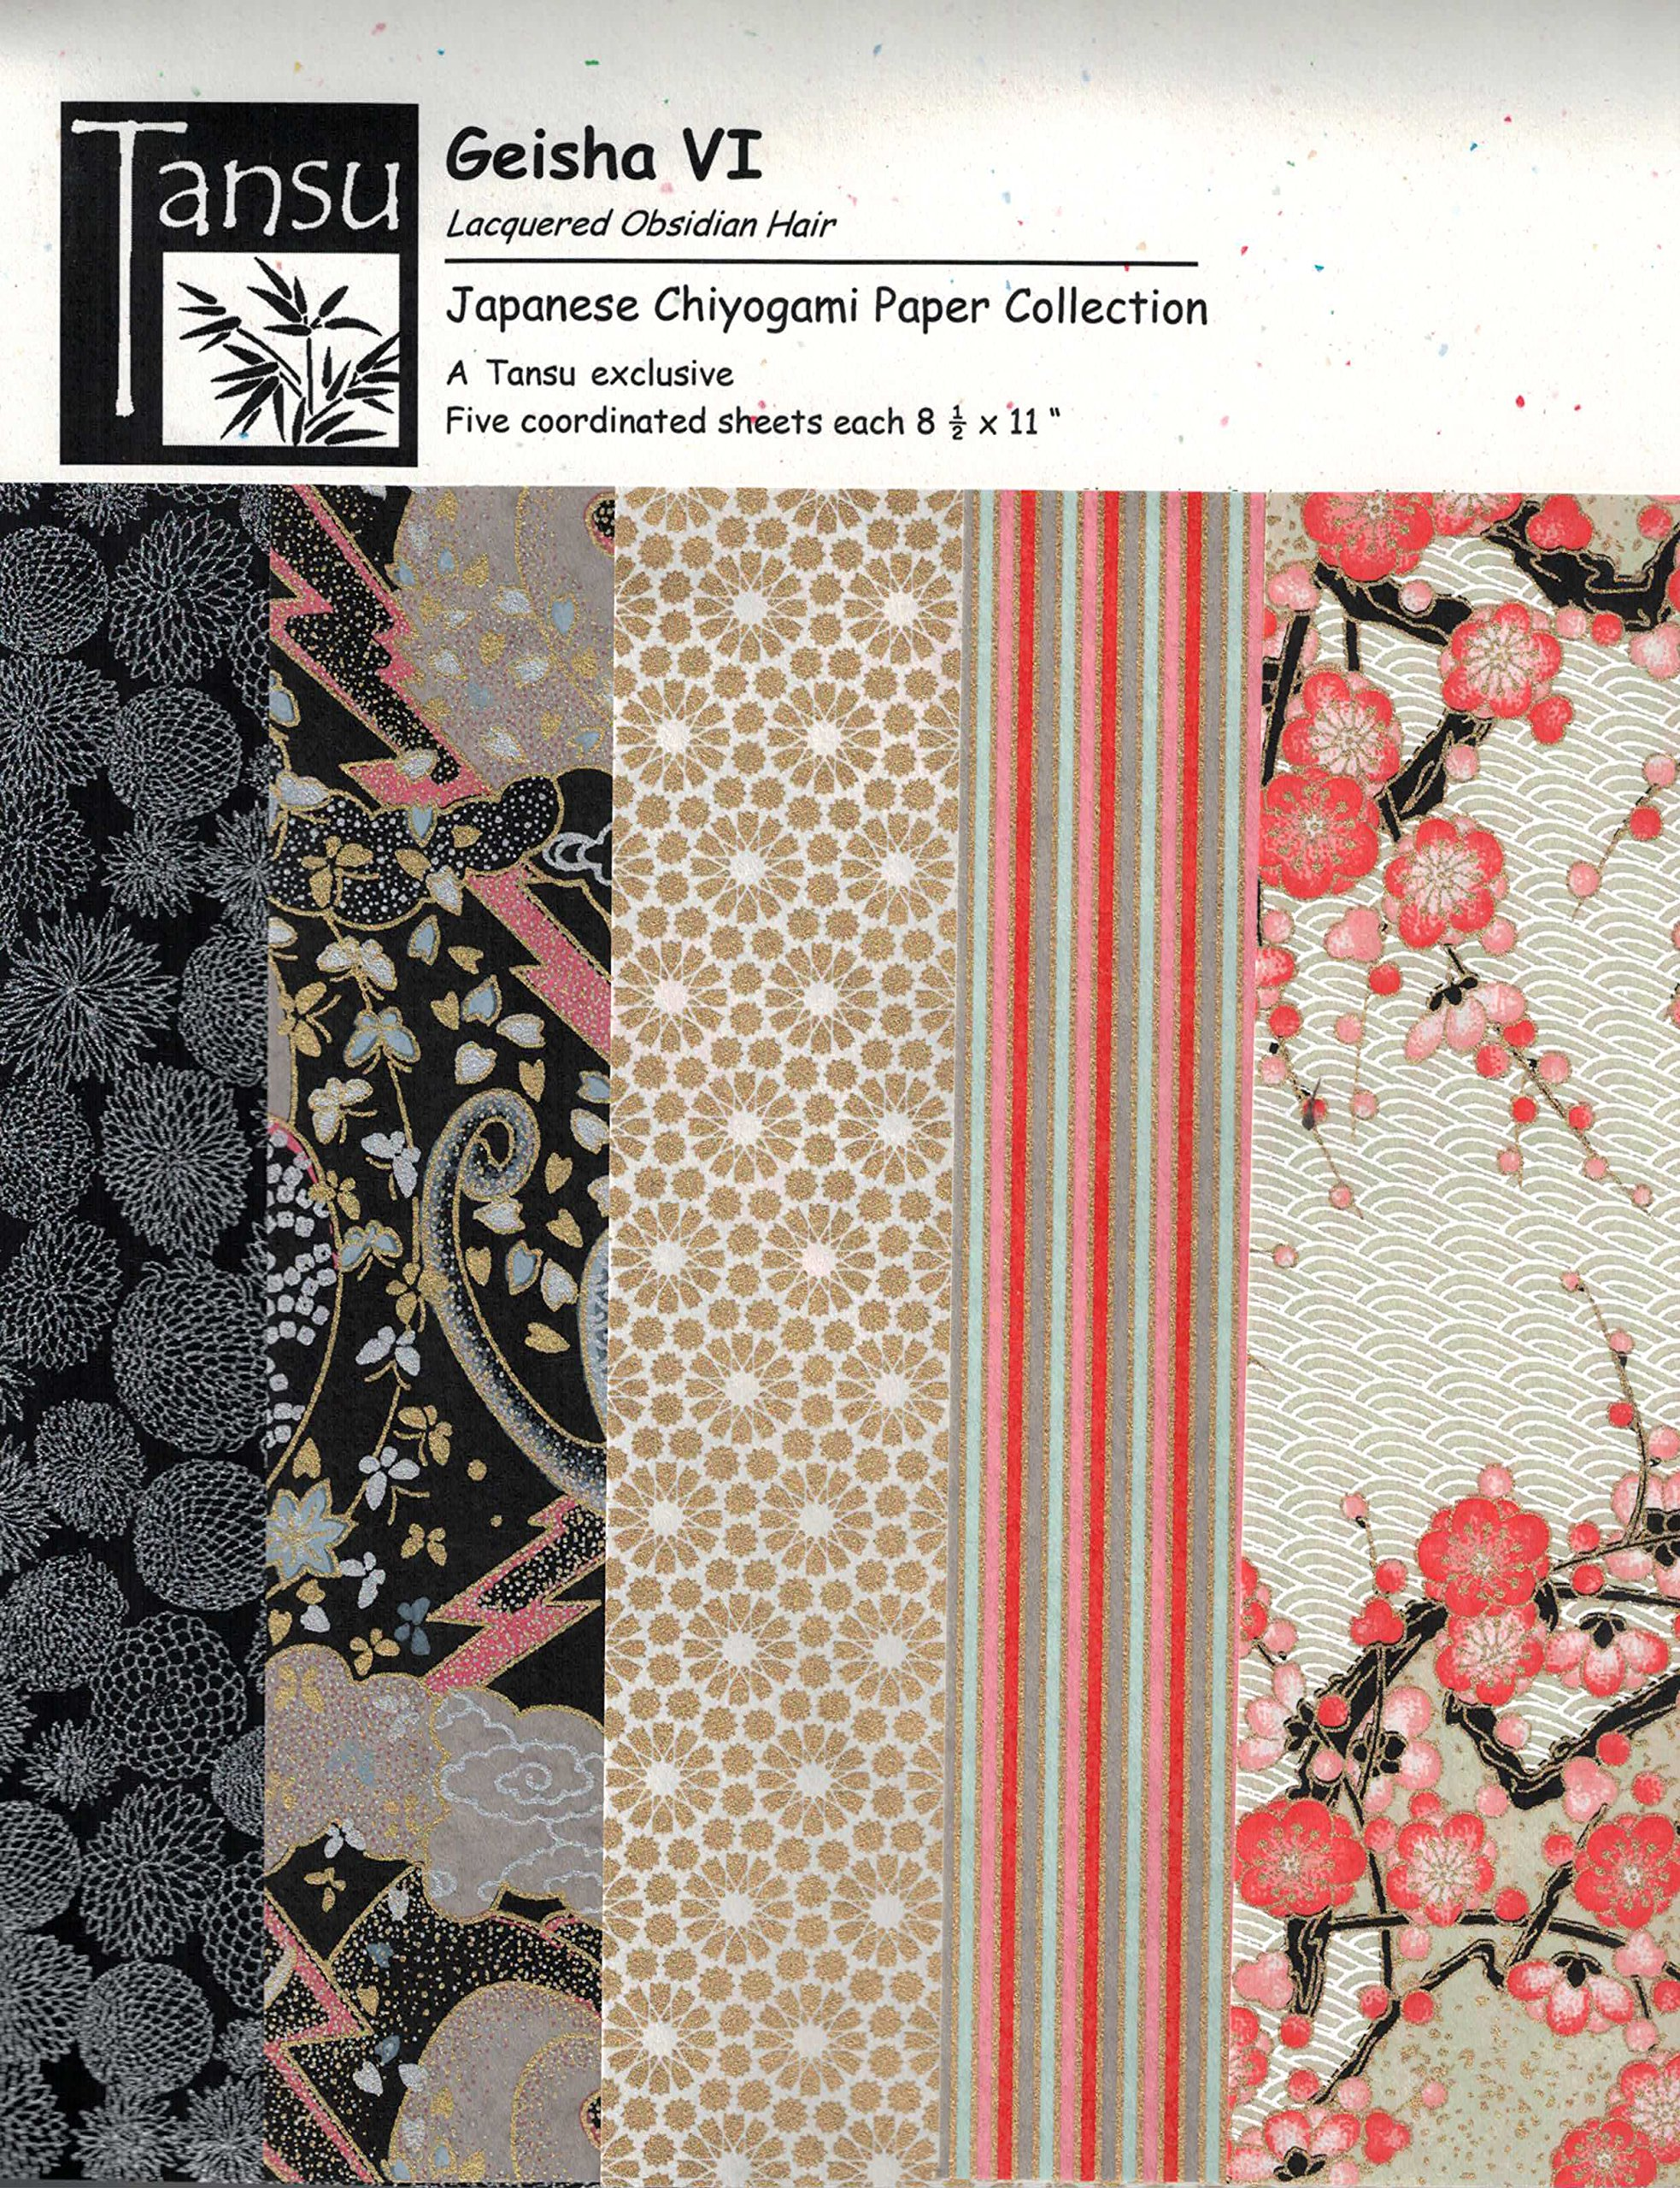 Japanese Chiyogami Papers - Geisha VI - Lacquered Obsidian Hair